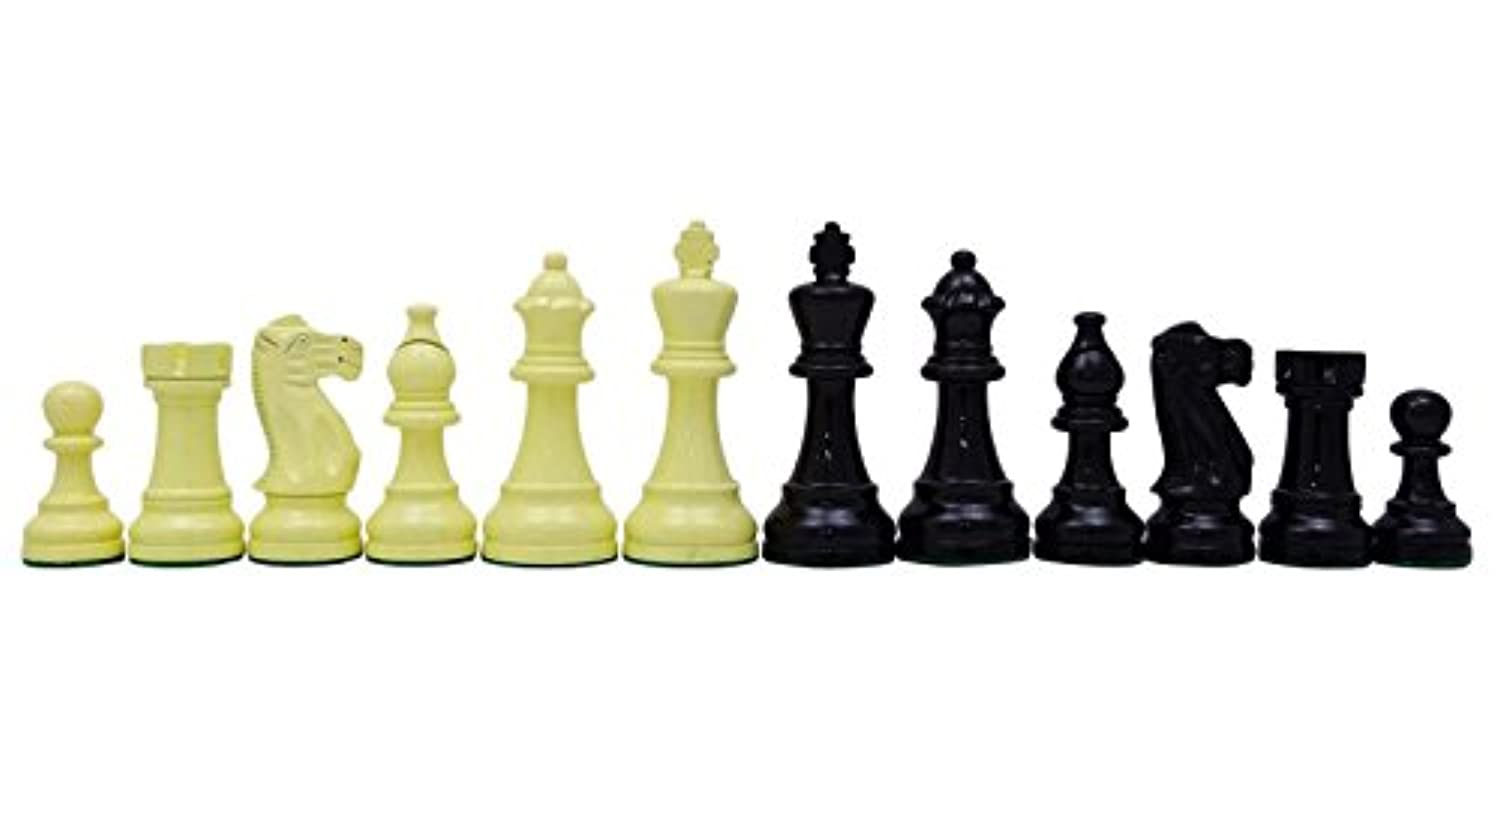 Chessmate Lacquered Knight Staunton Hand Crafted Chessmen Weighted King's Height 116 mm Gift For Men